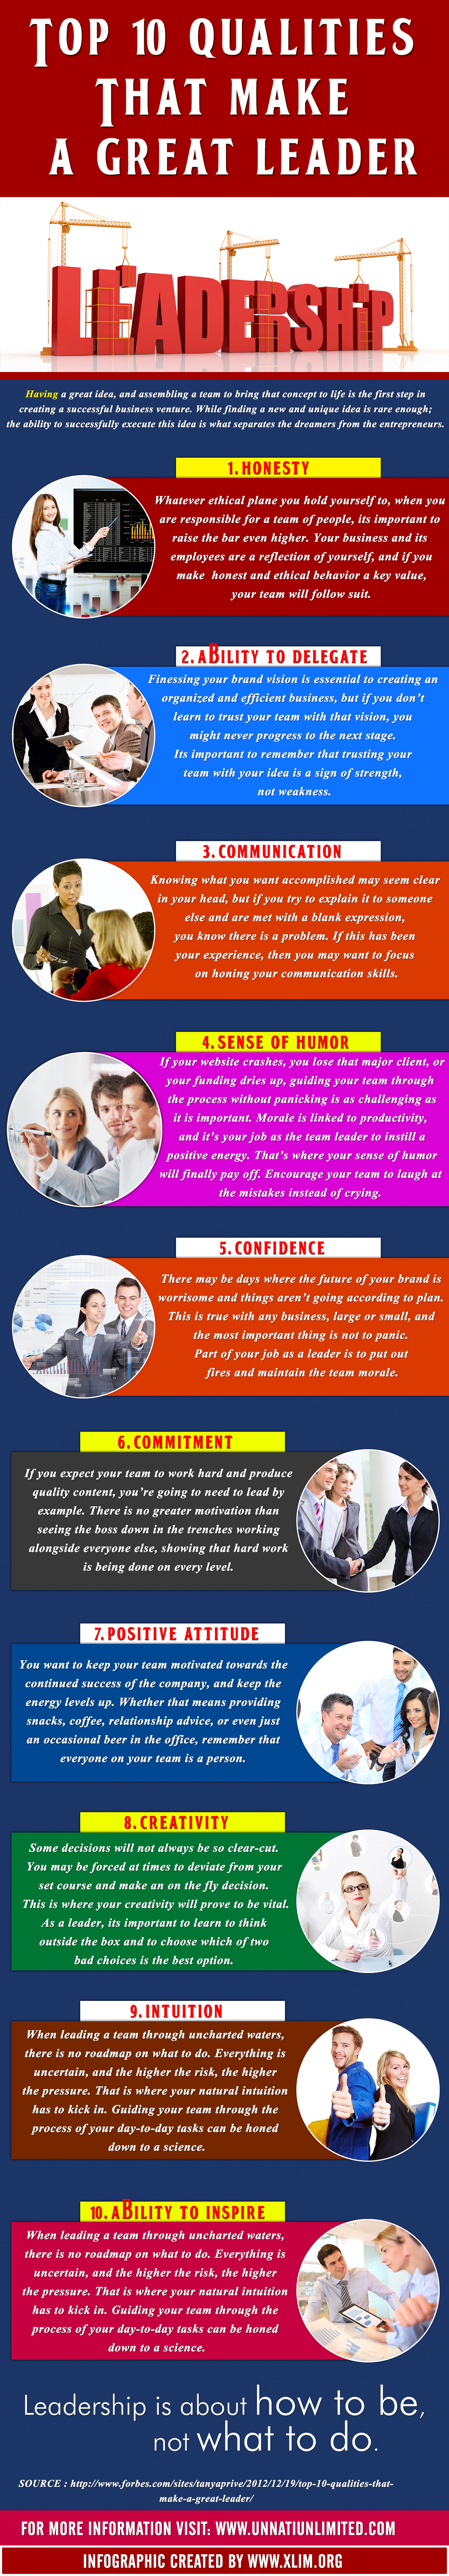 10 Qualities that make a great leader_UNNATI